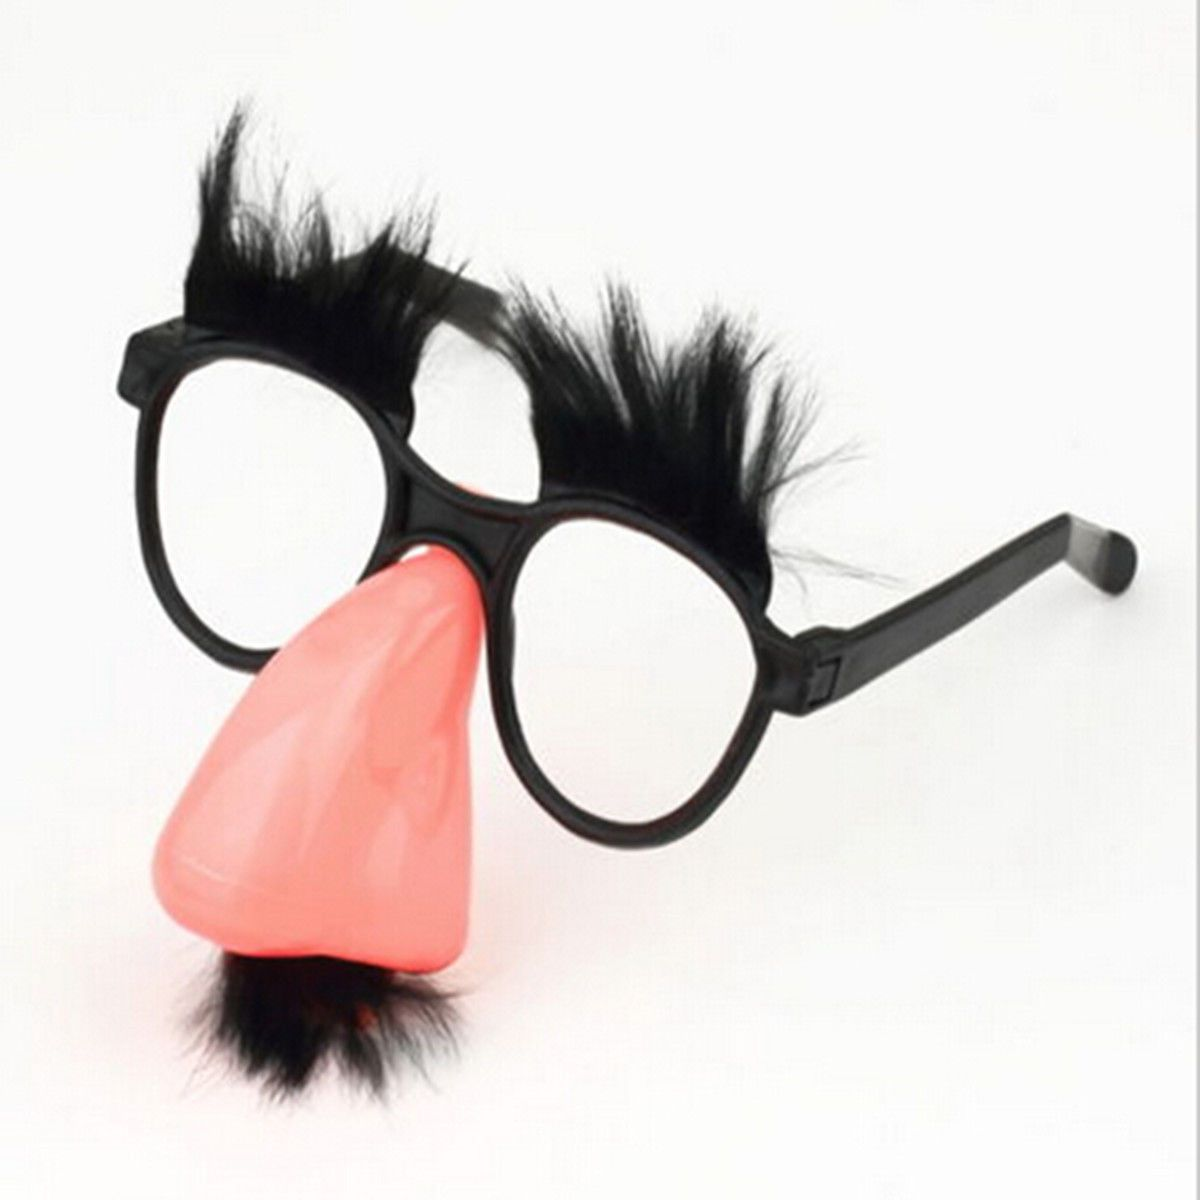 0 99 Fuzzy Puss Groucho Marx Beagle Glasses Nose Mustache Hair